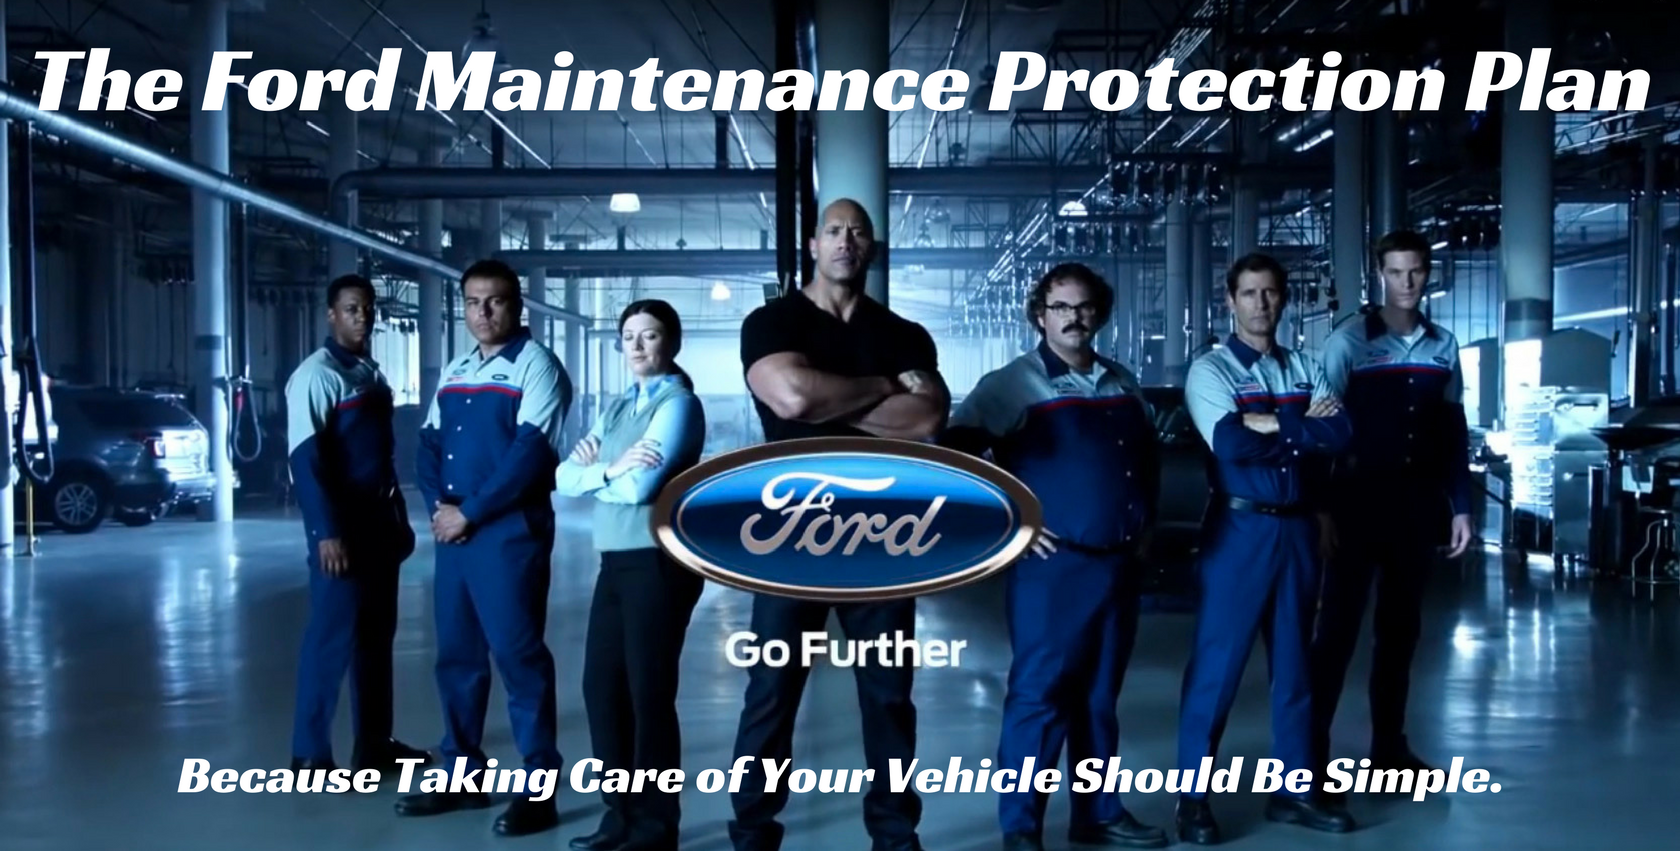 Ford Maintenance Protection Plan Gives You Convenience & Peace of Mind